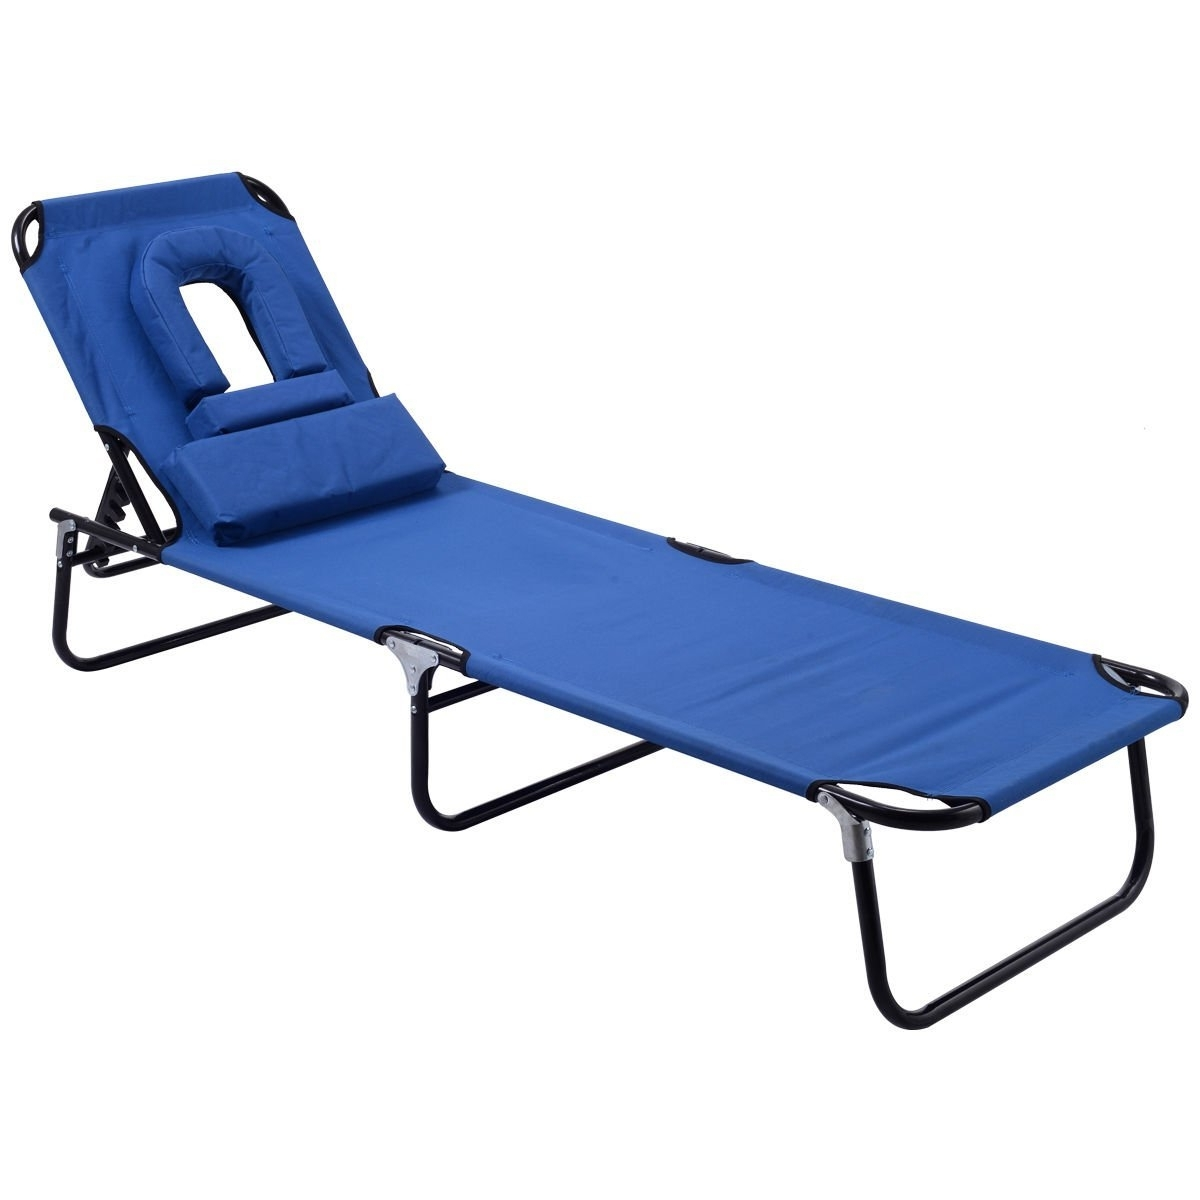 Newest Amazon: Goplus Folding Chaise Lounge Chair Bed Outdoor Patio With Regard To Chaise Lounge Sun Chairs (View 8 of 15)